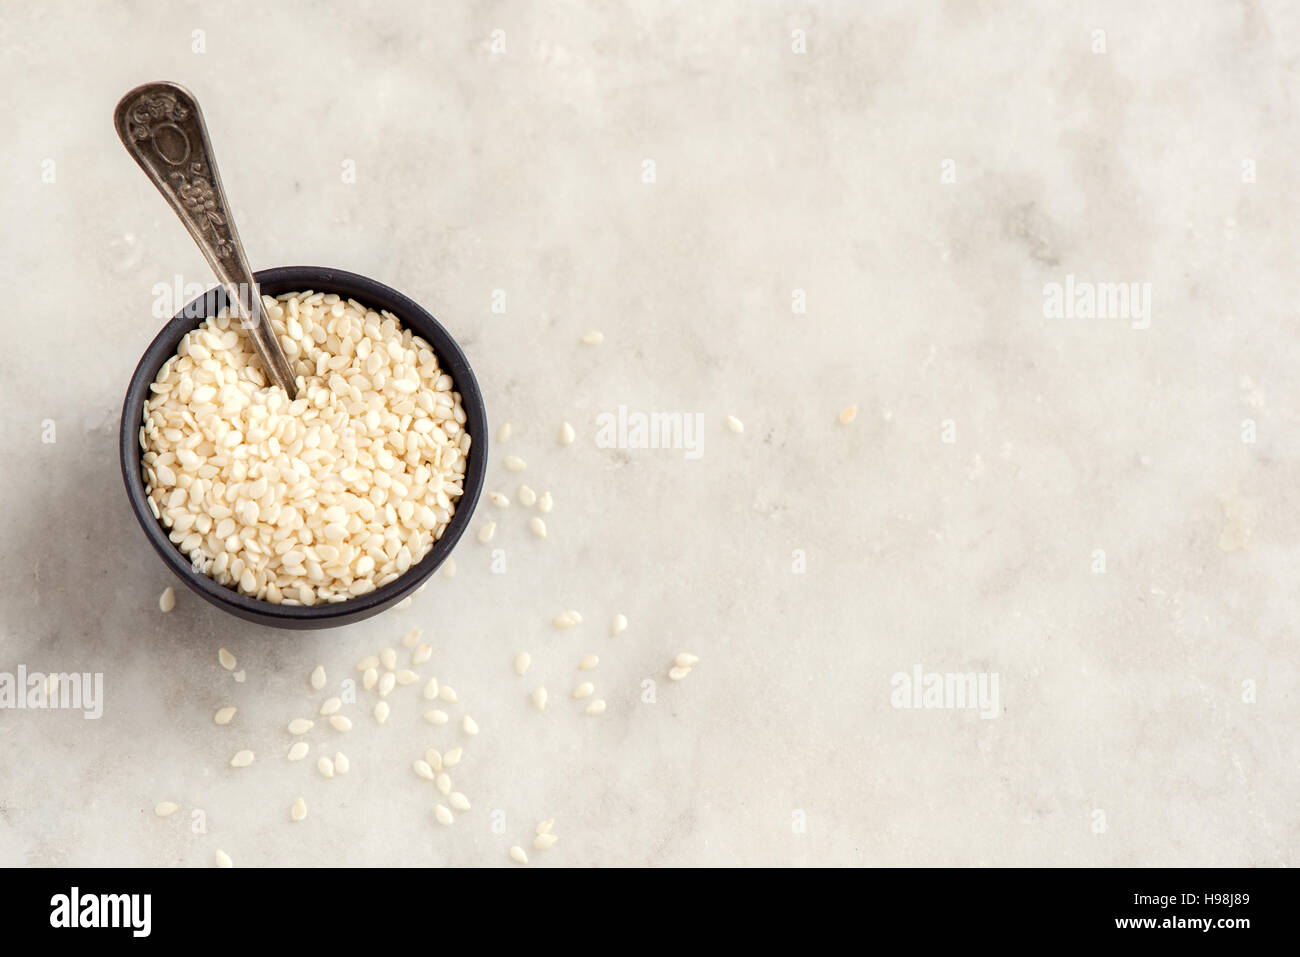 Sesame seeds in bowl over white stone background with copy space - healthy food ingredient - Stock Image